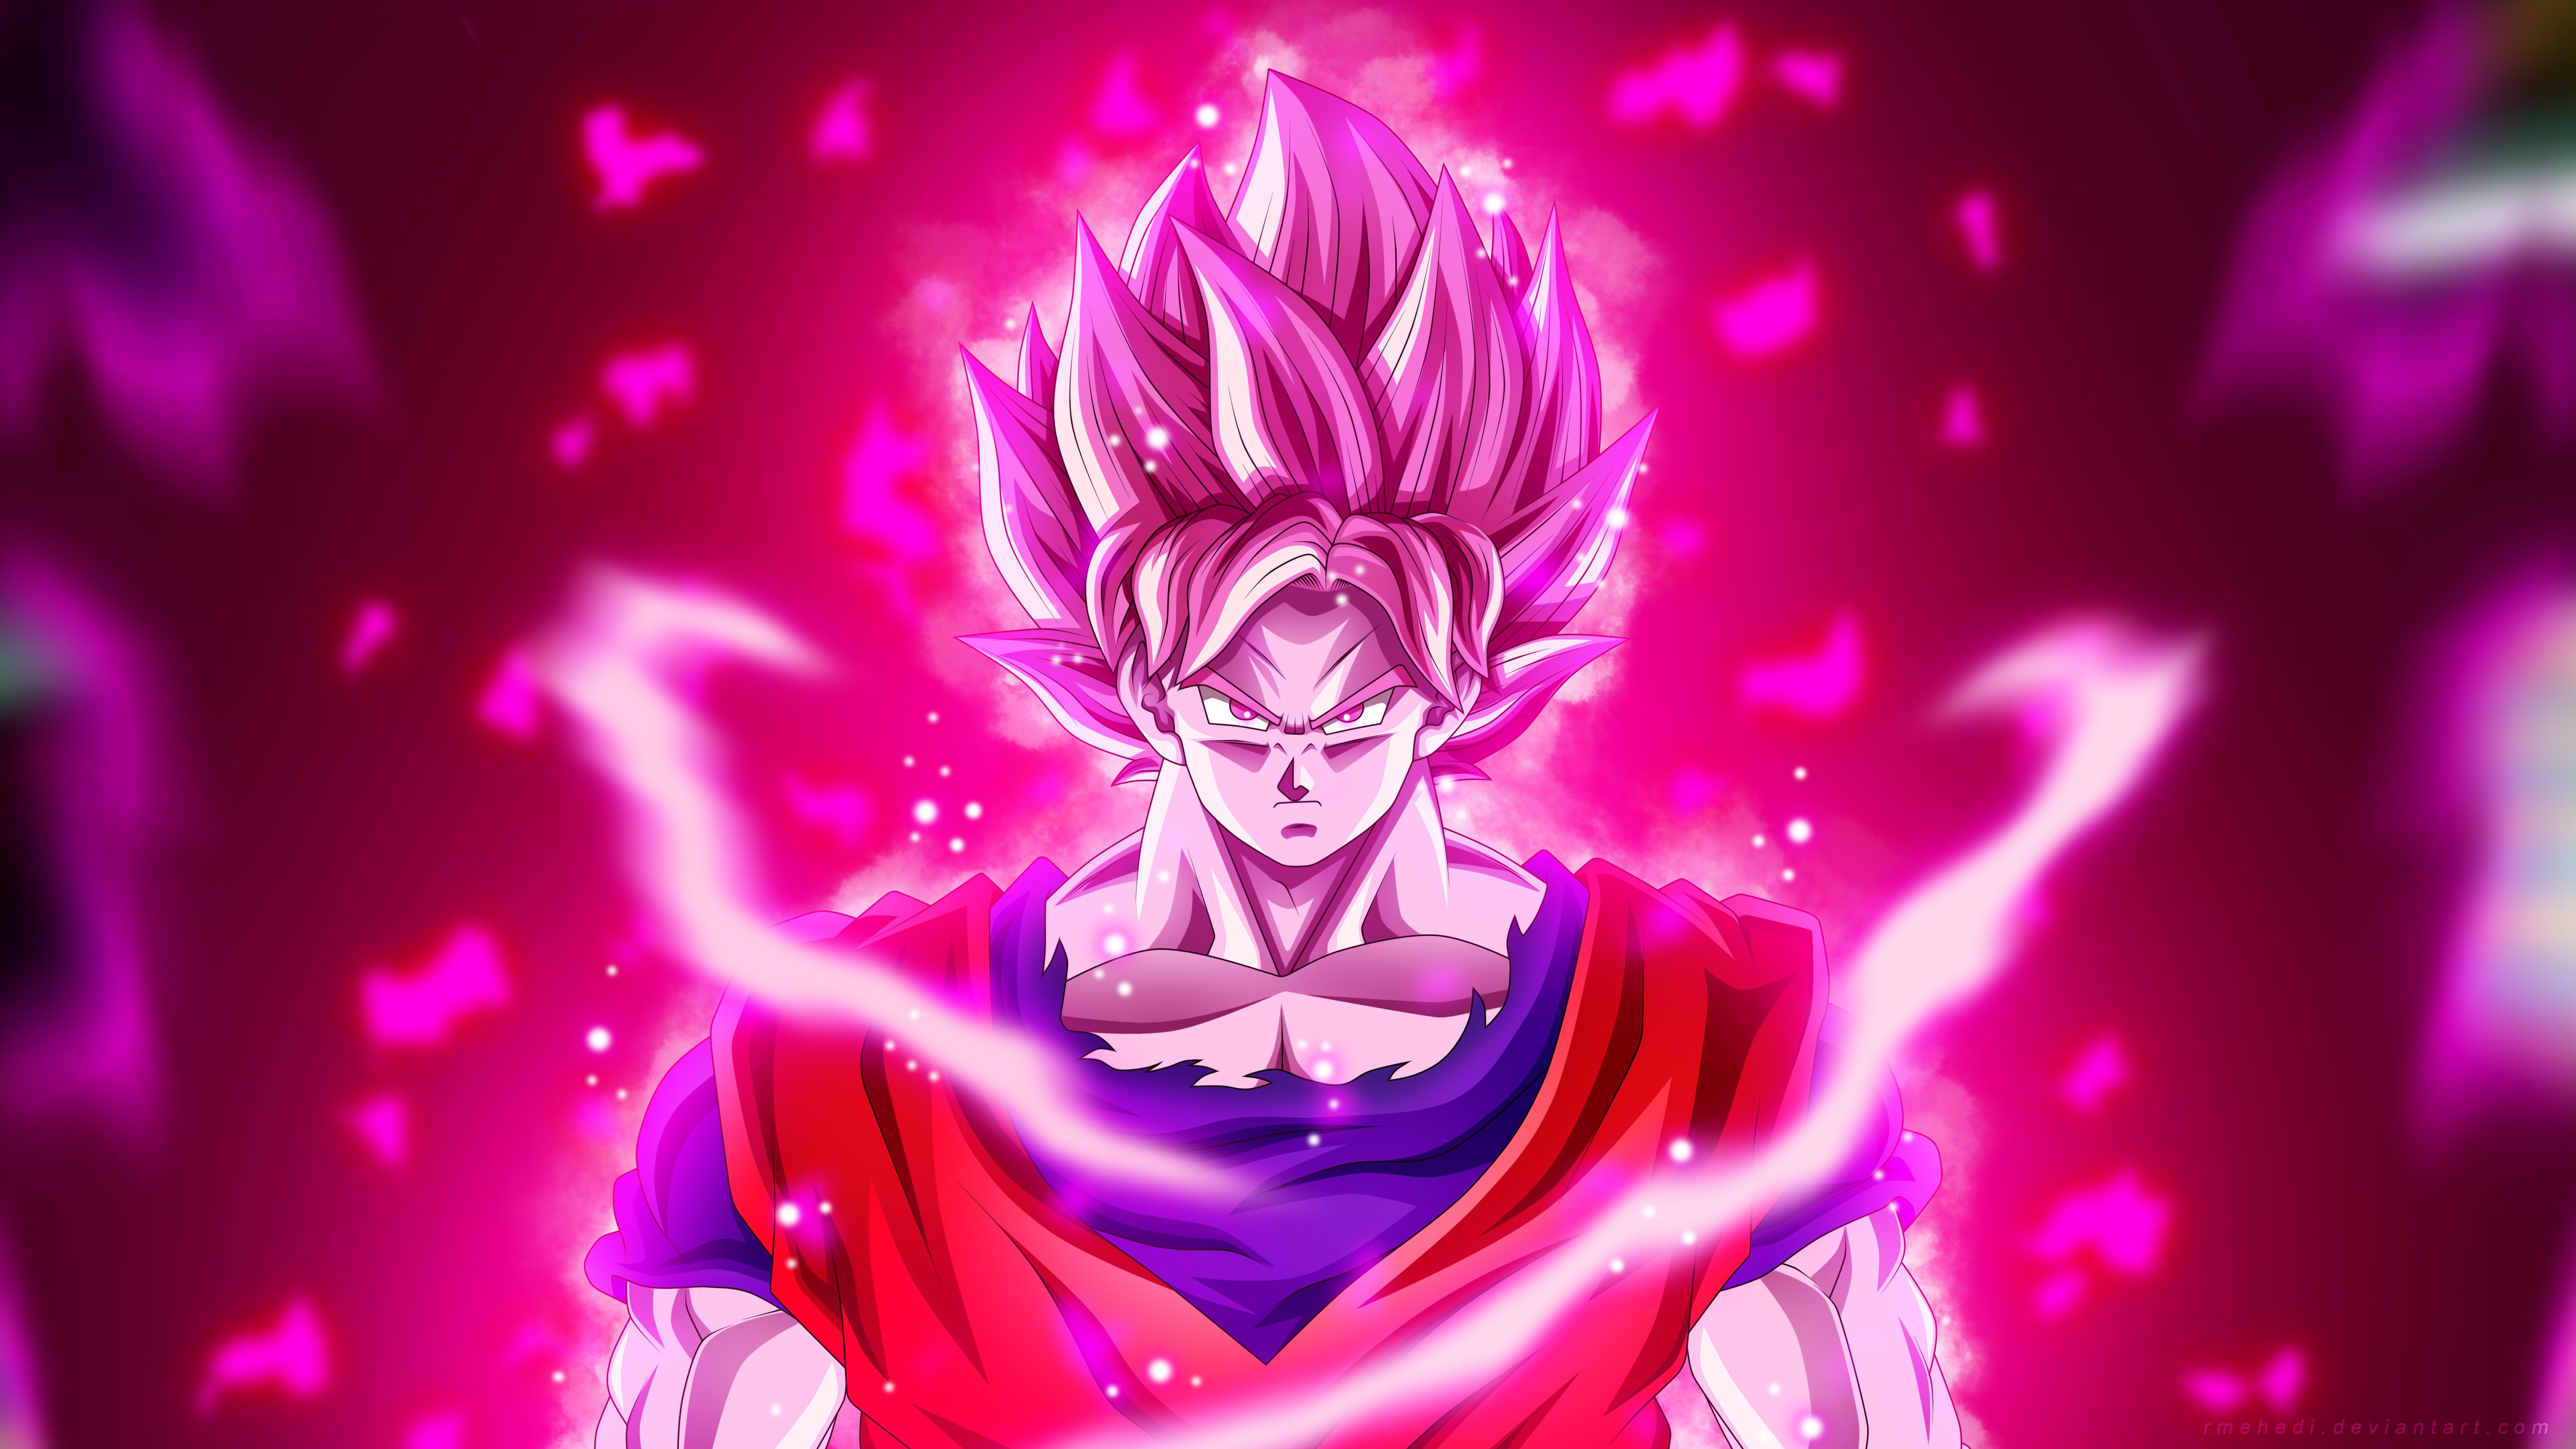 Free Download Goku Dragon Ball Super 4k Wallpapers Hd Wallpapers 5760x3240 For Your Desktop Mobile Tablet Explore 52 Goku Kaioken Mobile Wallpapers Goku Kaioken Mobile Wallpapers Goku Backgrounds Goku Wallpaper